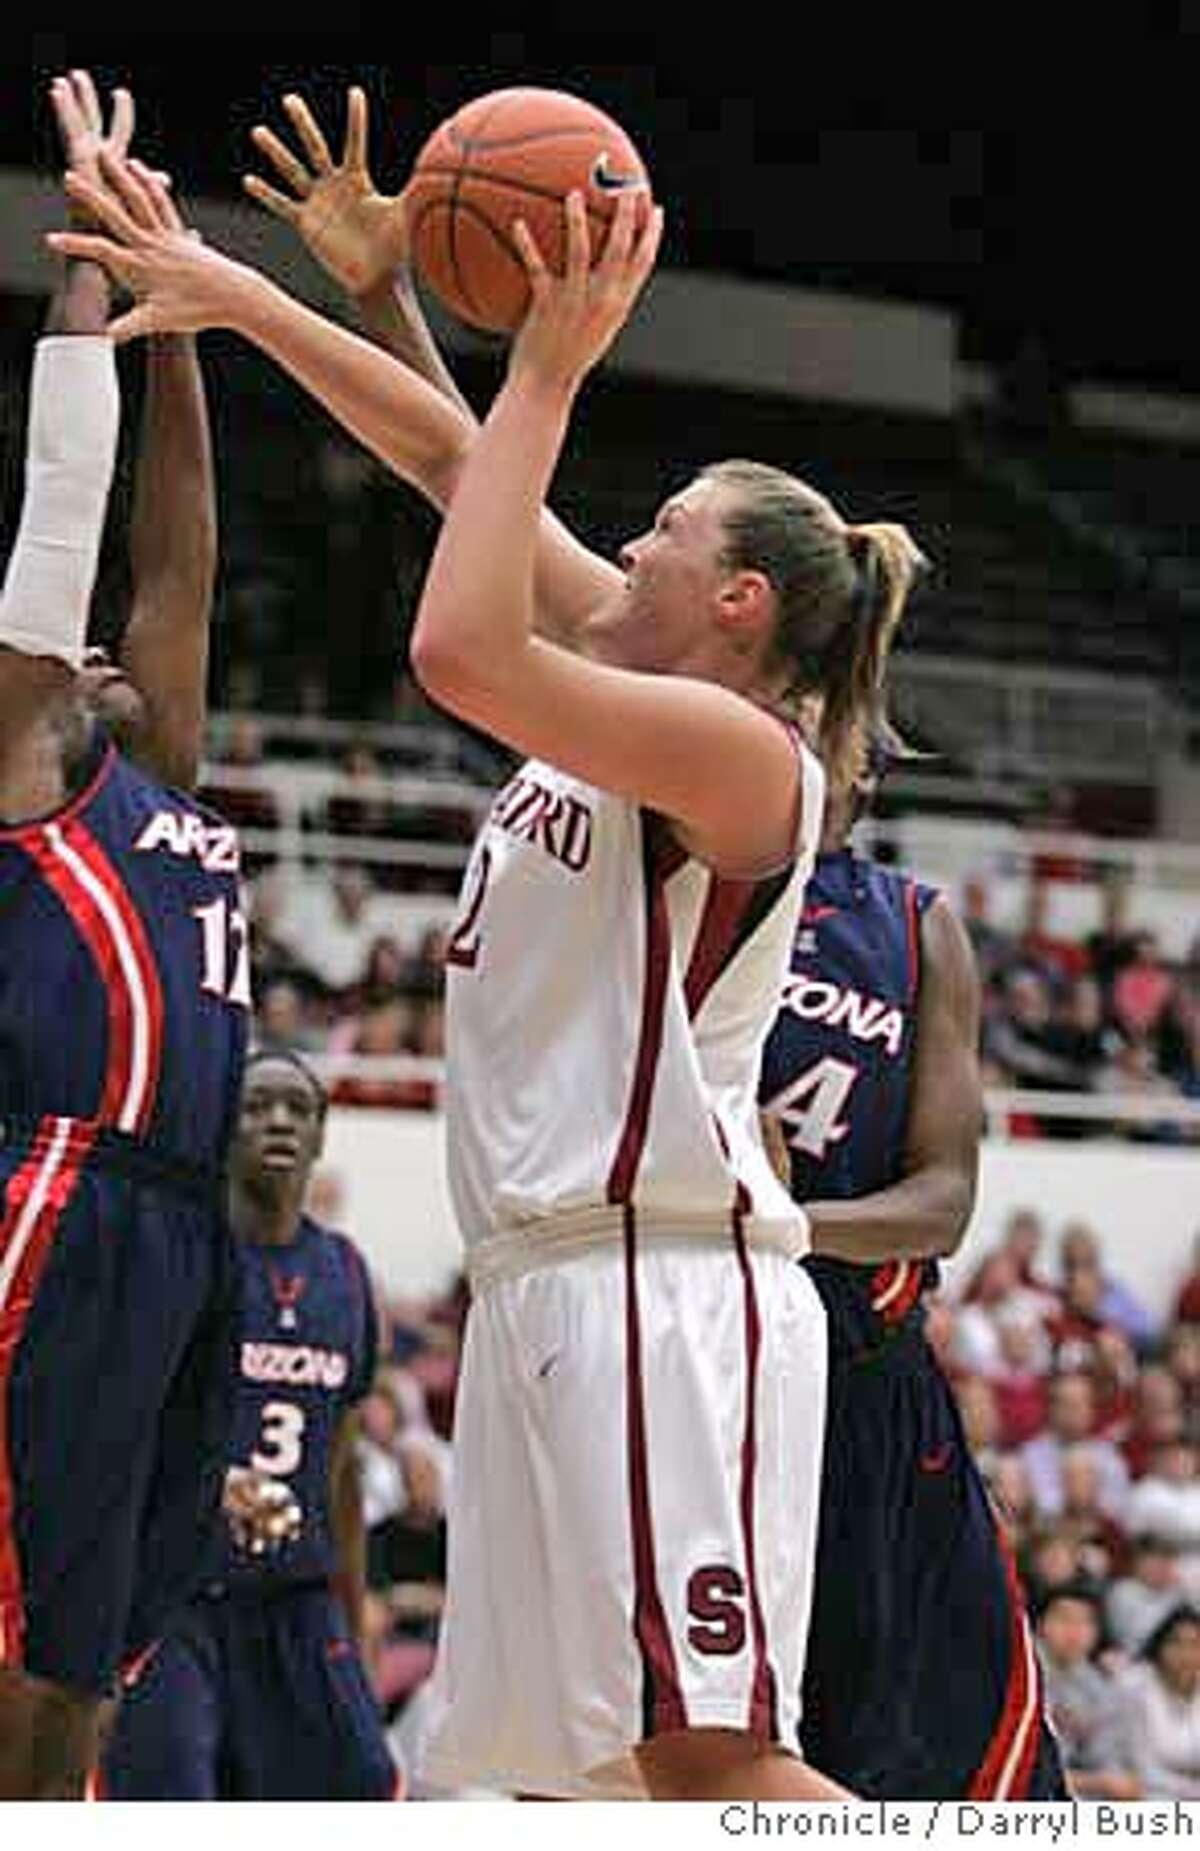 Stanford's Jayne Appel (2) scores over Arizona's Ashley Whisonant, left, and Beatrice Bofia, right, in the first half of their NCAA basketball game in Stanford, Calif., Thursday, Feb. 14, 2008. (AP Photo/Darryl Bush) EFE OUT